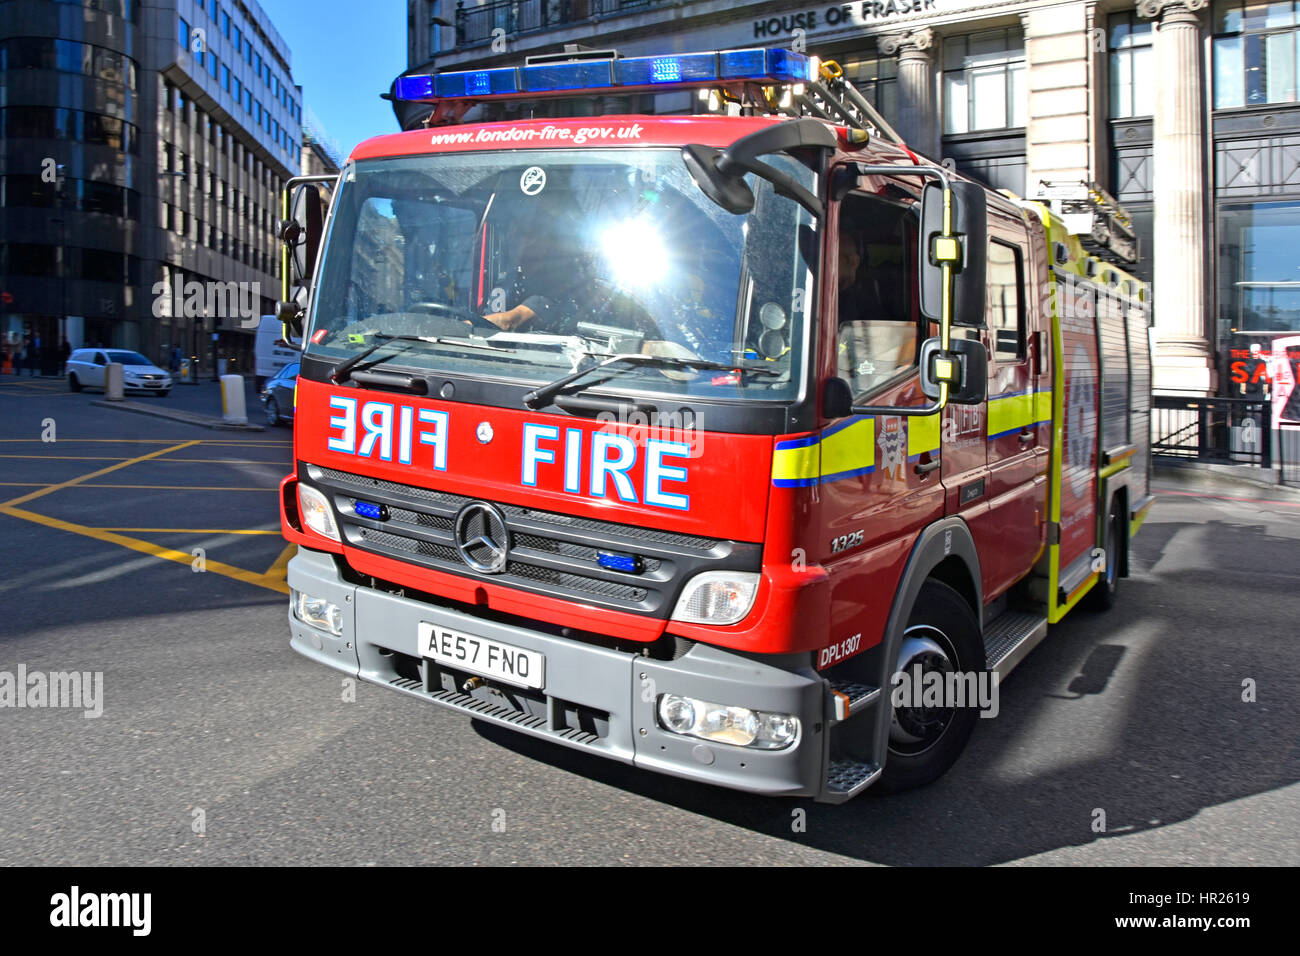 Fire engine emergency services response uk sun flare on windscreen of London Fire brigade Mercedes Benz appliance - Stock Image